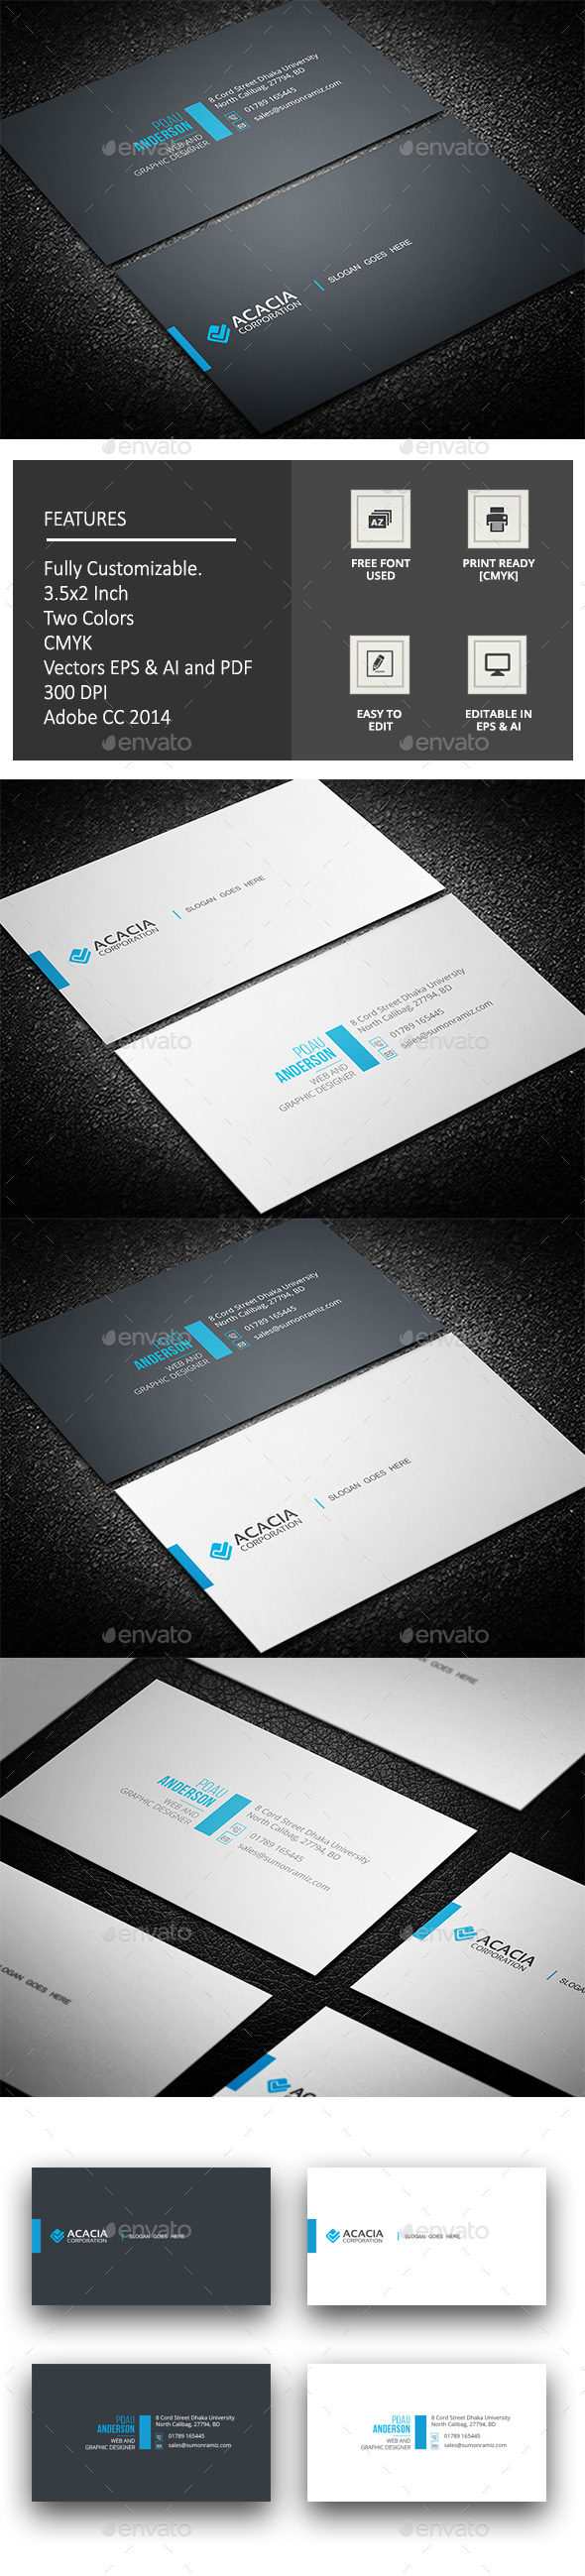 Kala Business Card | Ai illustrator, Card templates and Business cards